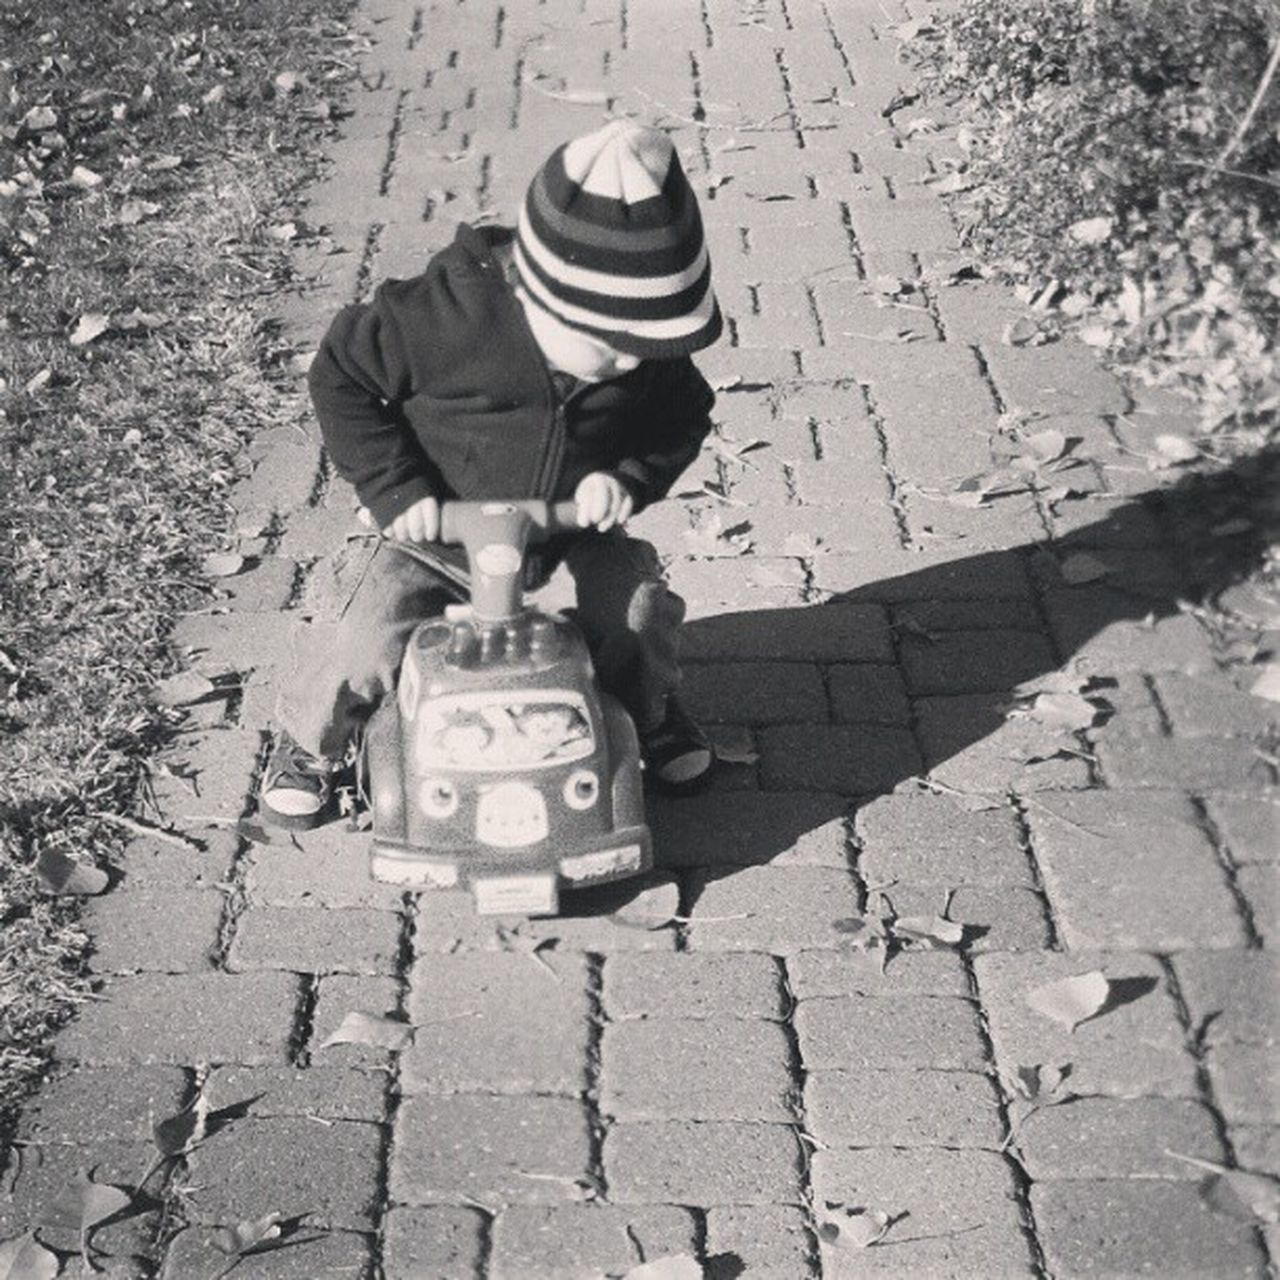 HIGH ANGLE VIEW OF BOY ON COBBLESTONE